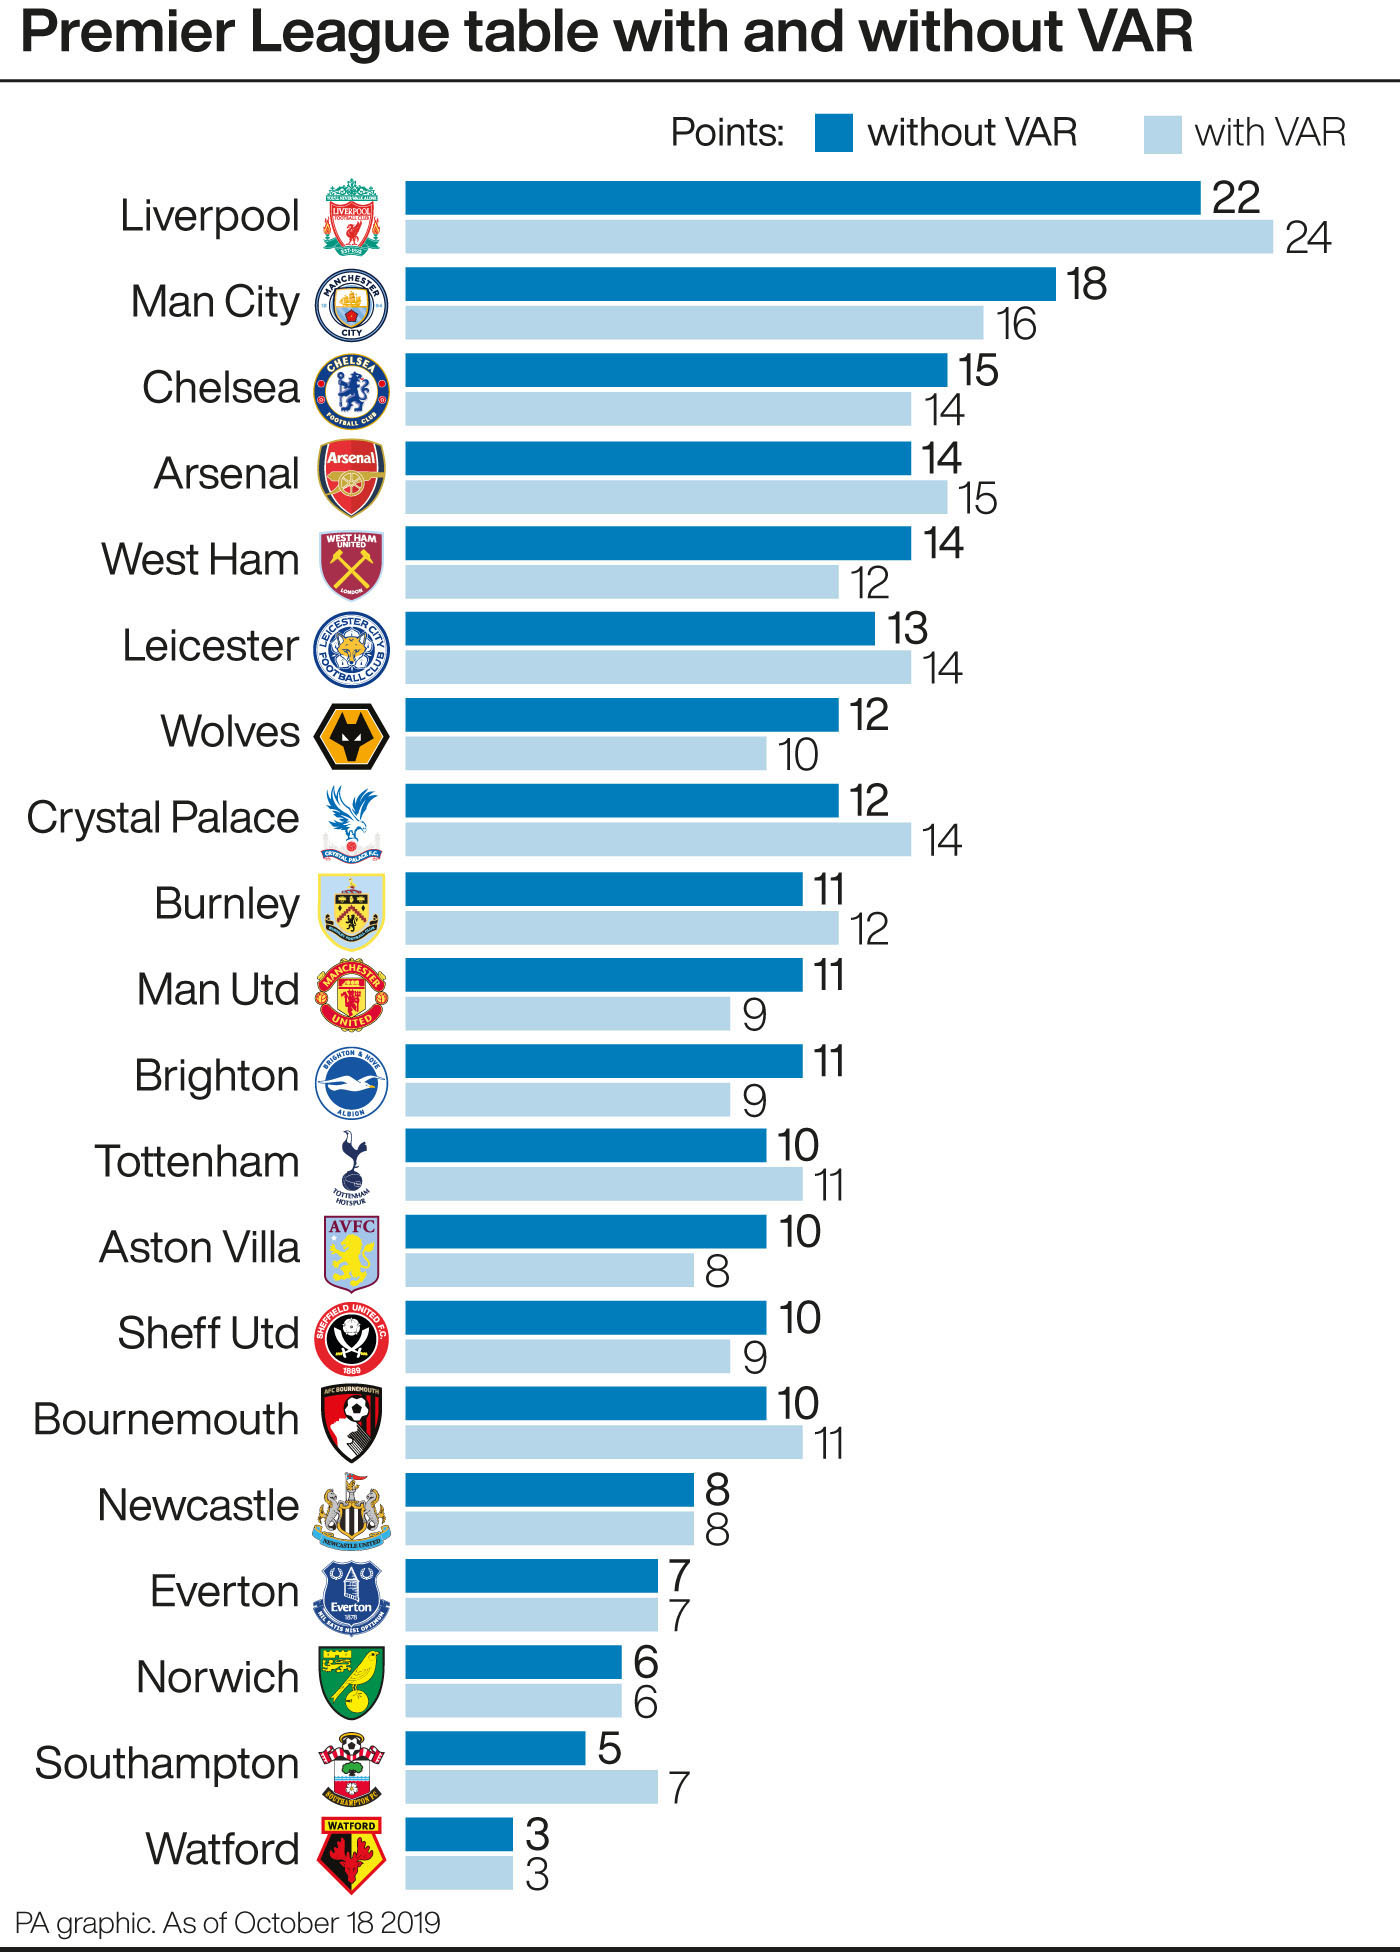 Premier League table with and without VAR